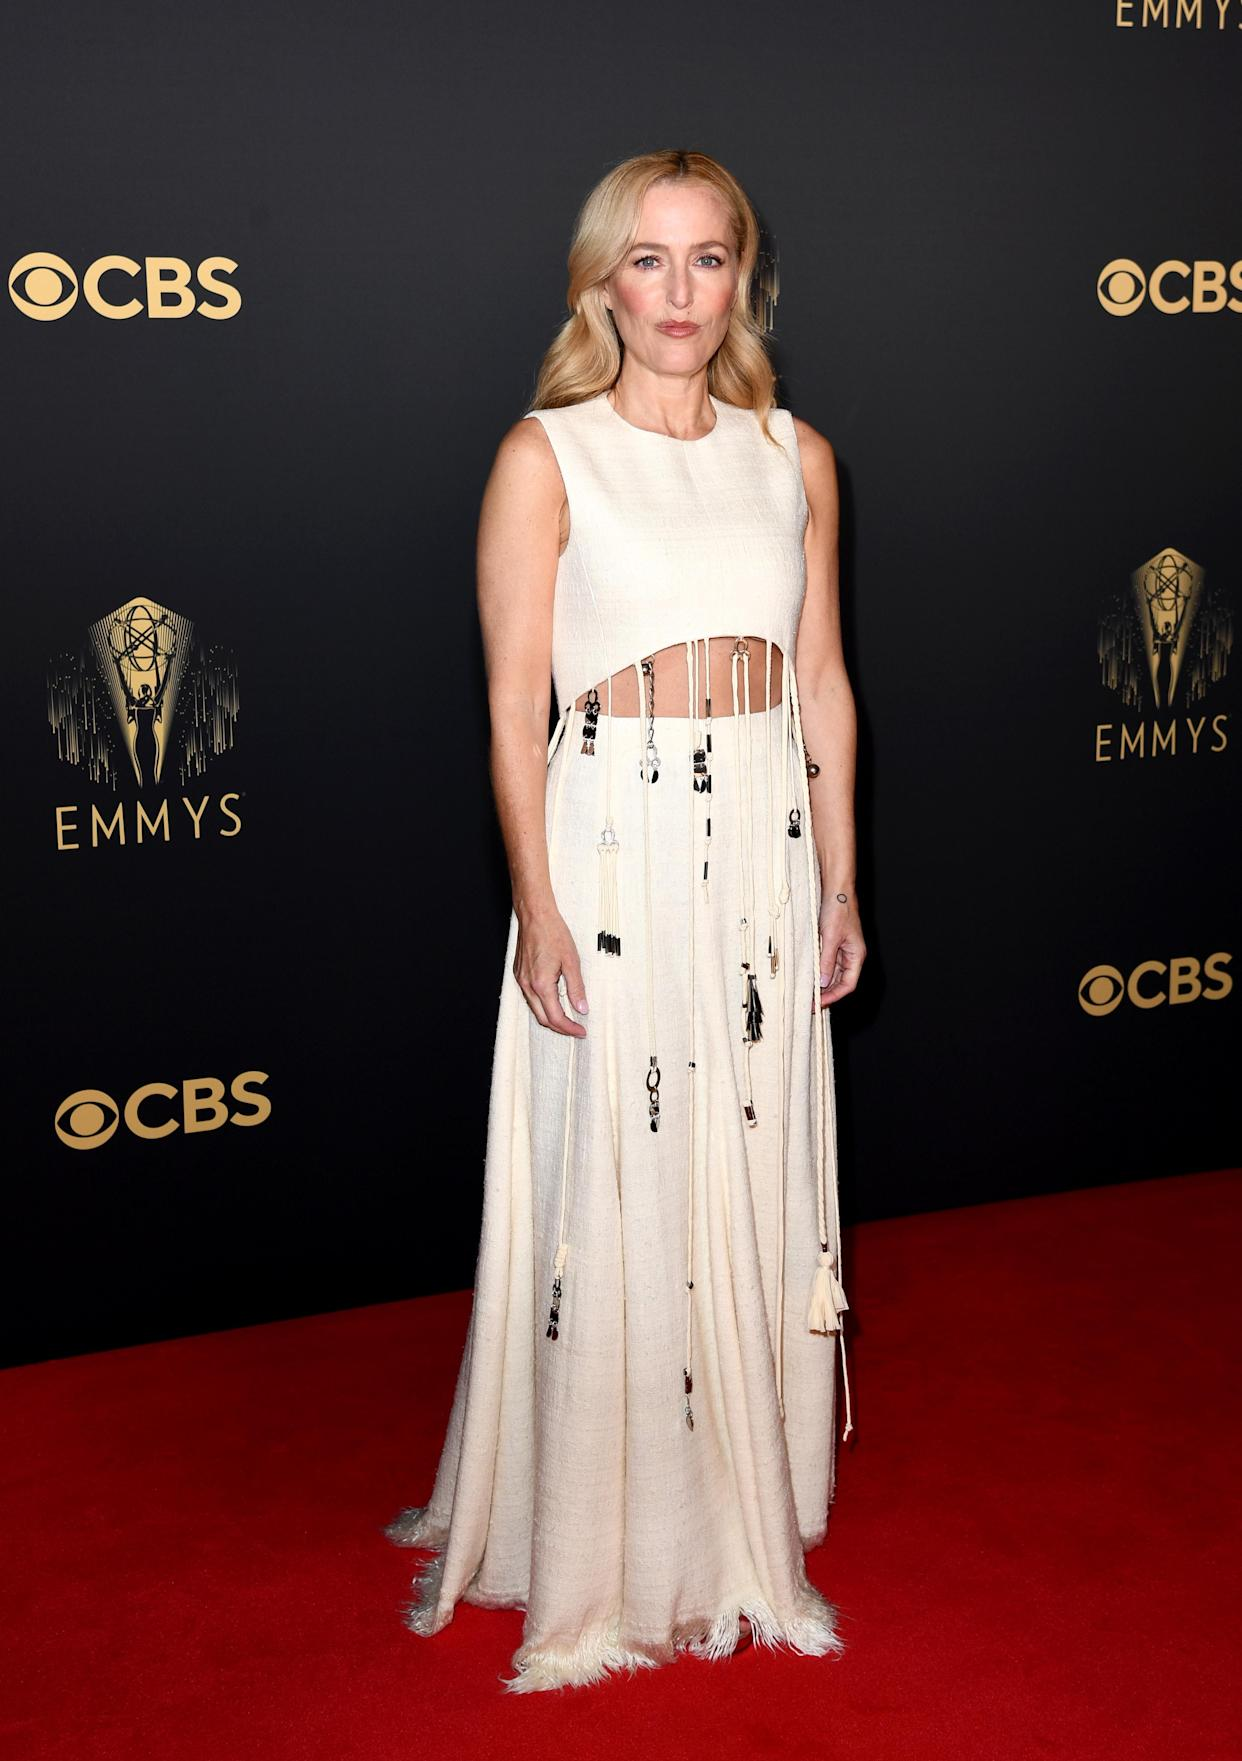 The actor wore a cut-out dress by Chloe. (Getty Images)